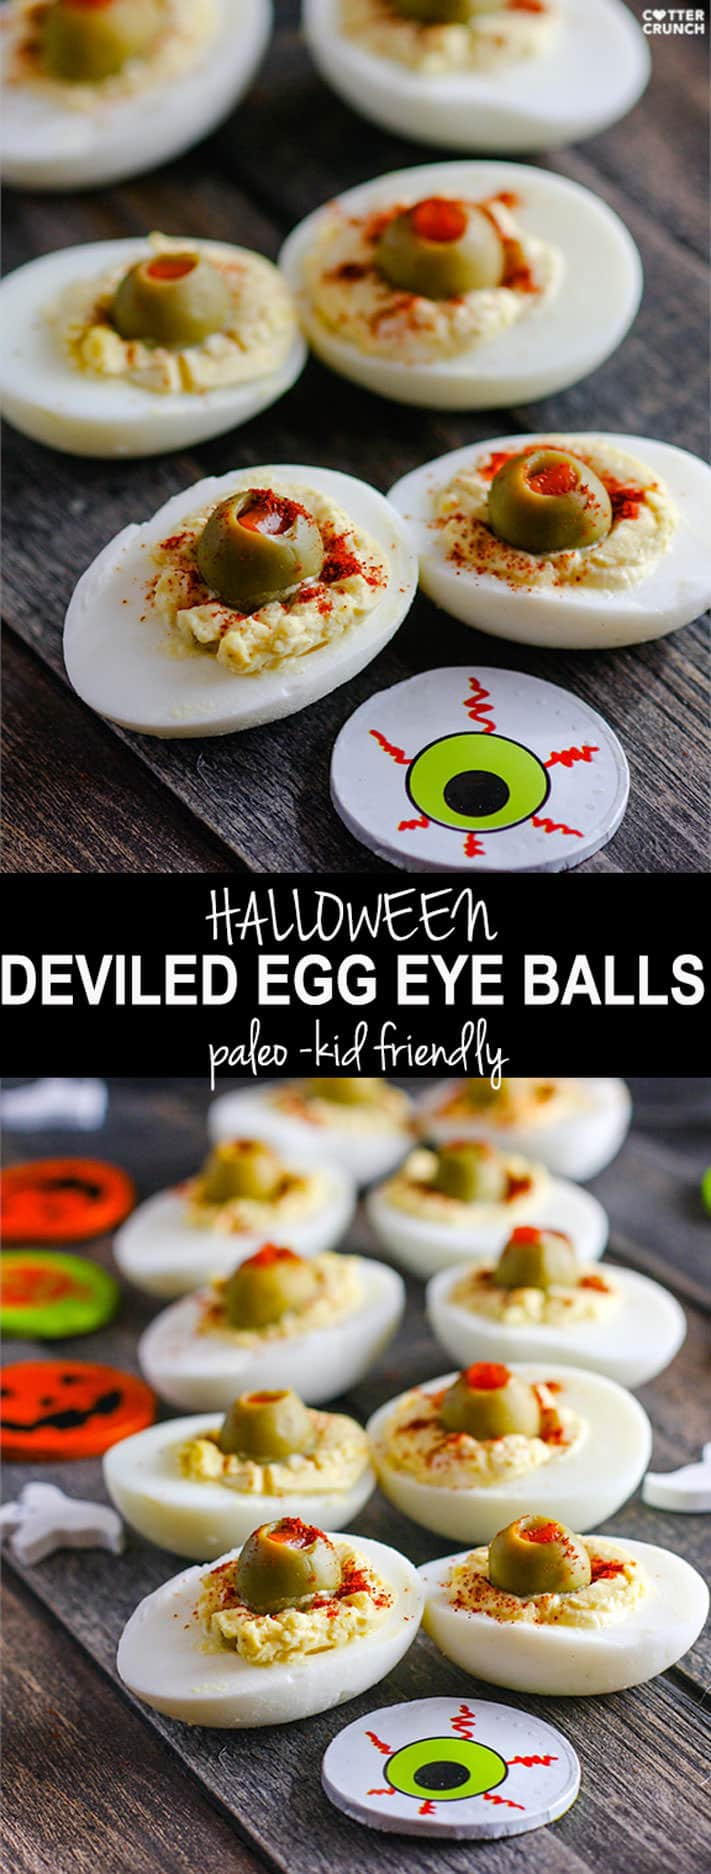 This tasty appetizer is commonly known, but my version is spooky for Halloween. Deviled eggs made to look like blood shot eyeballs! All you need are green olives, spices, eggs, and your favorite paleo condiment to mix in! Deviled egg eyeballs a favorite with the kids (and adults) at Halloween parties but also easy to make and healthy! Recipe – http://bit.ly/eggeyeball